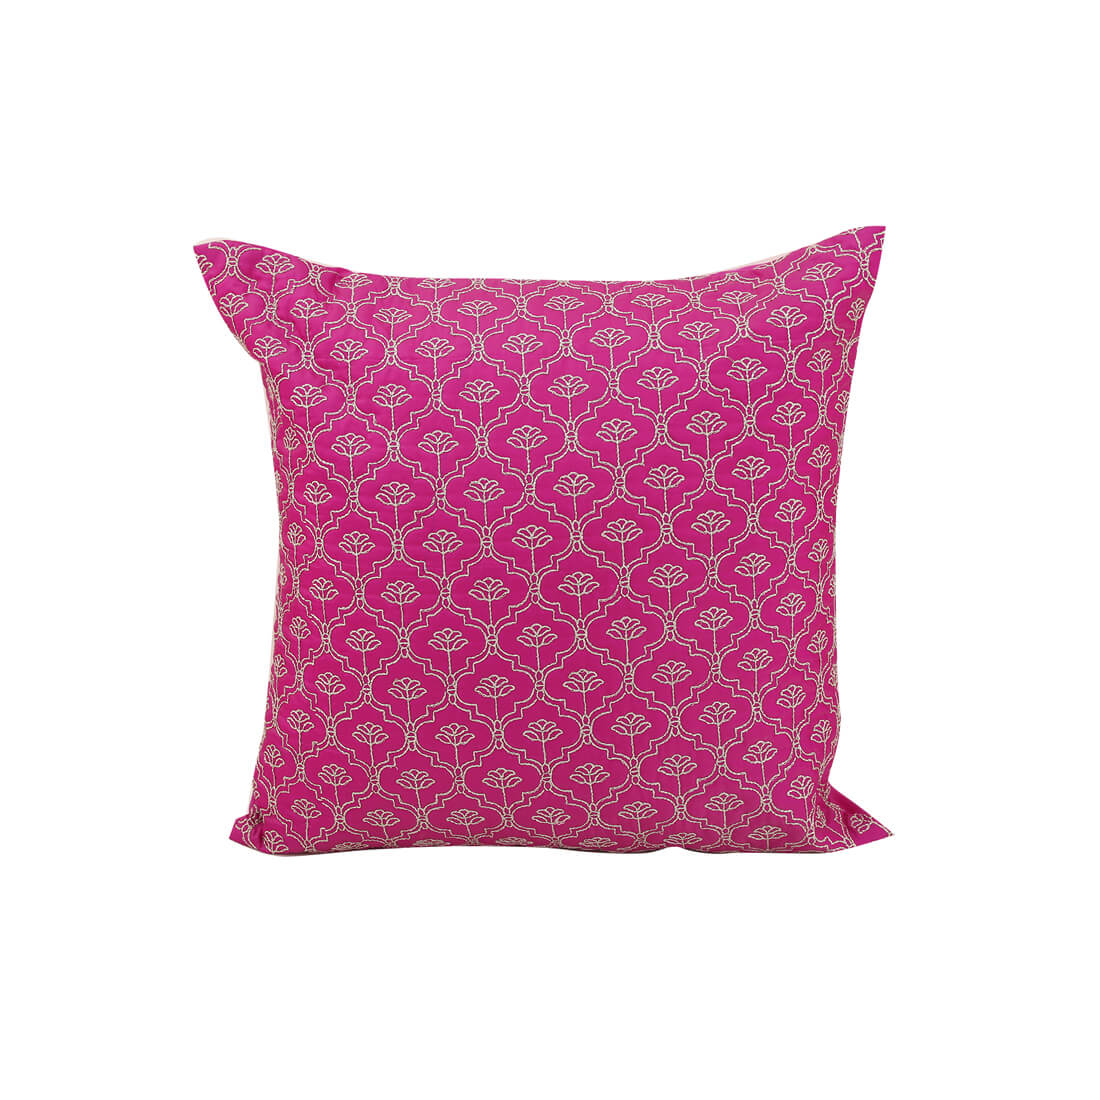 Ogee Magenta Polyester Cushion Covers in Magenta Colour by Living Essence